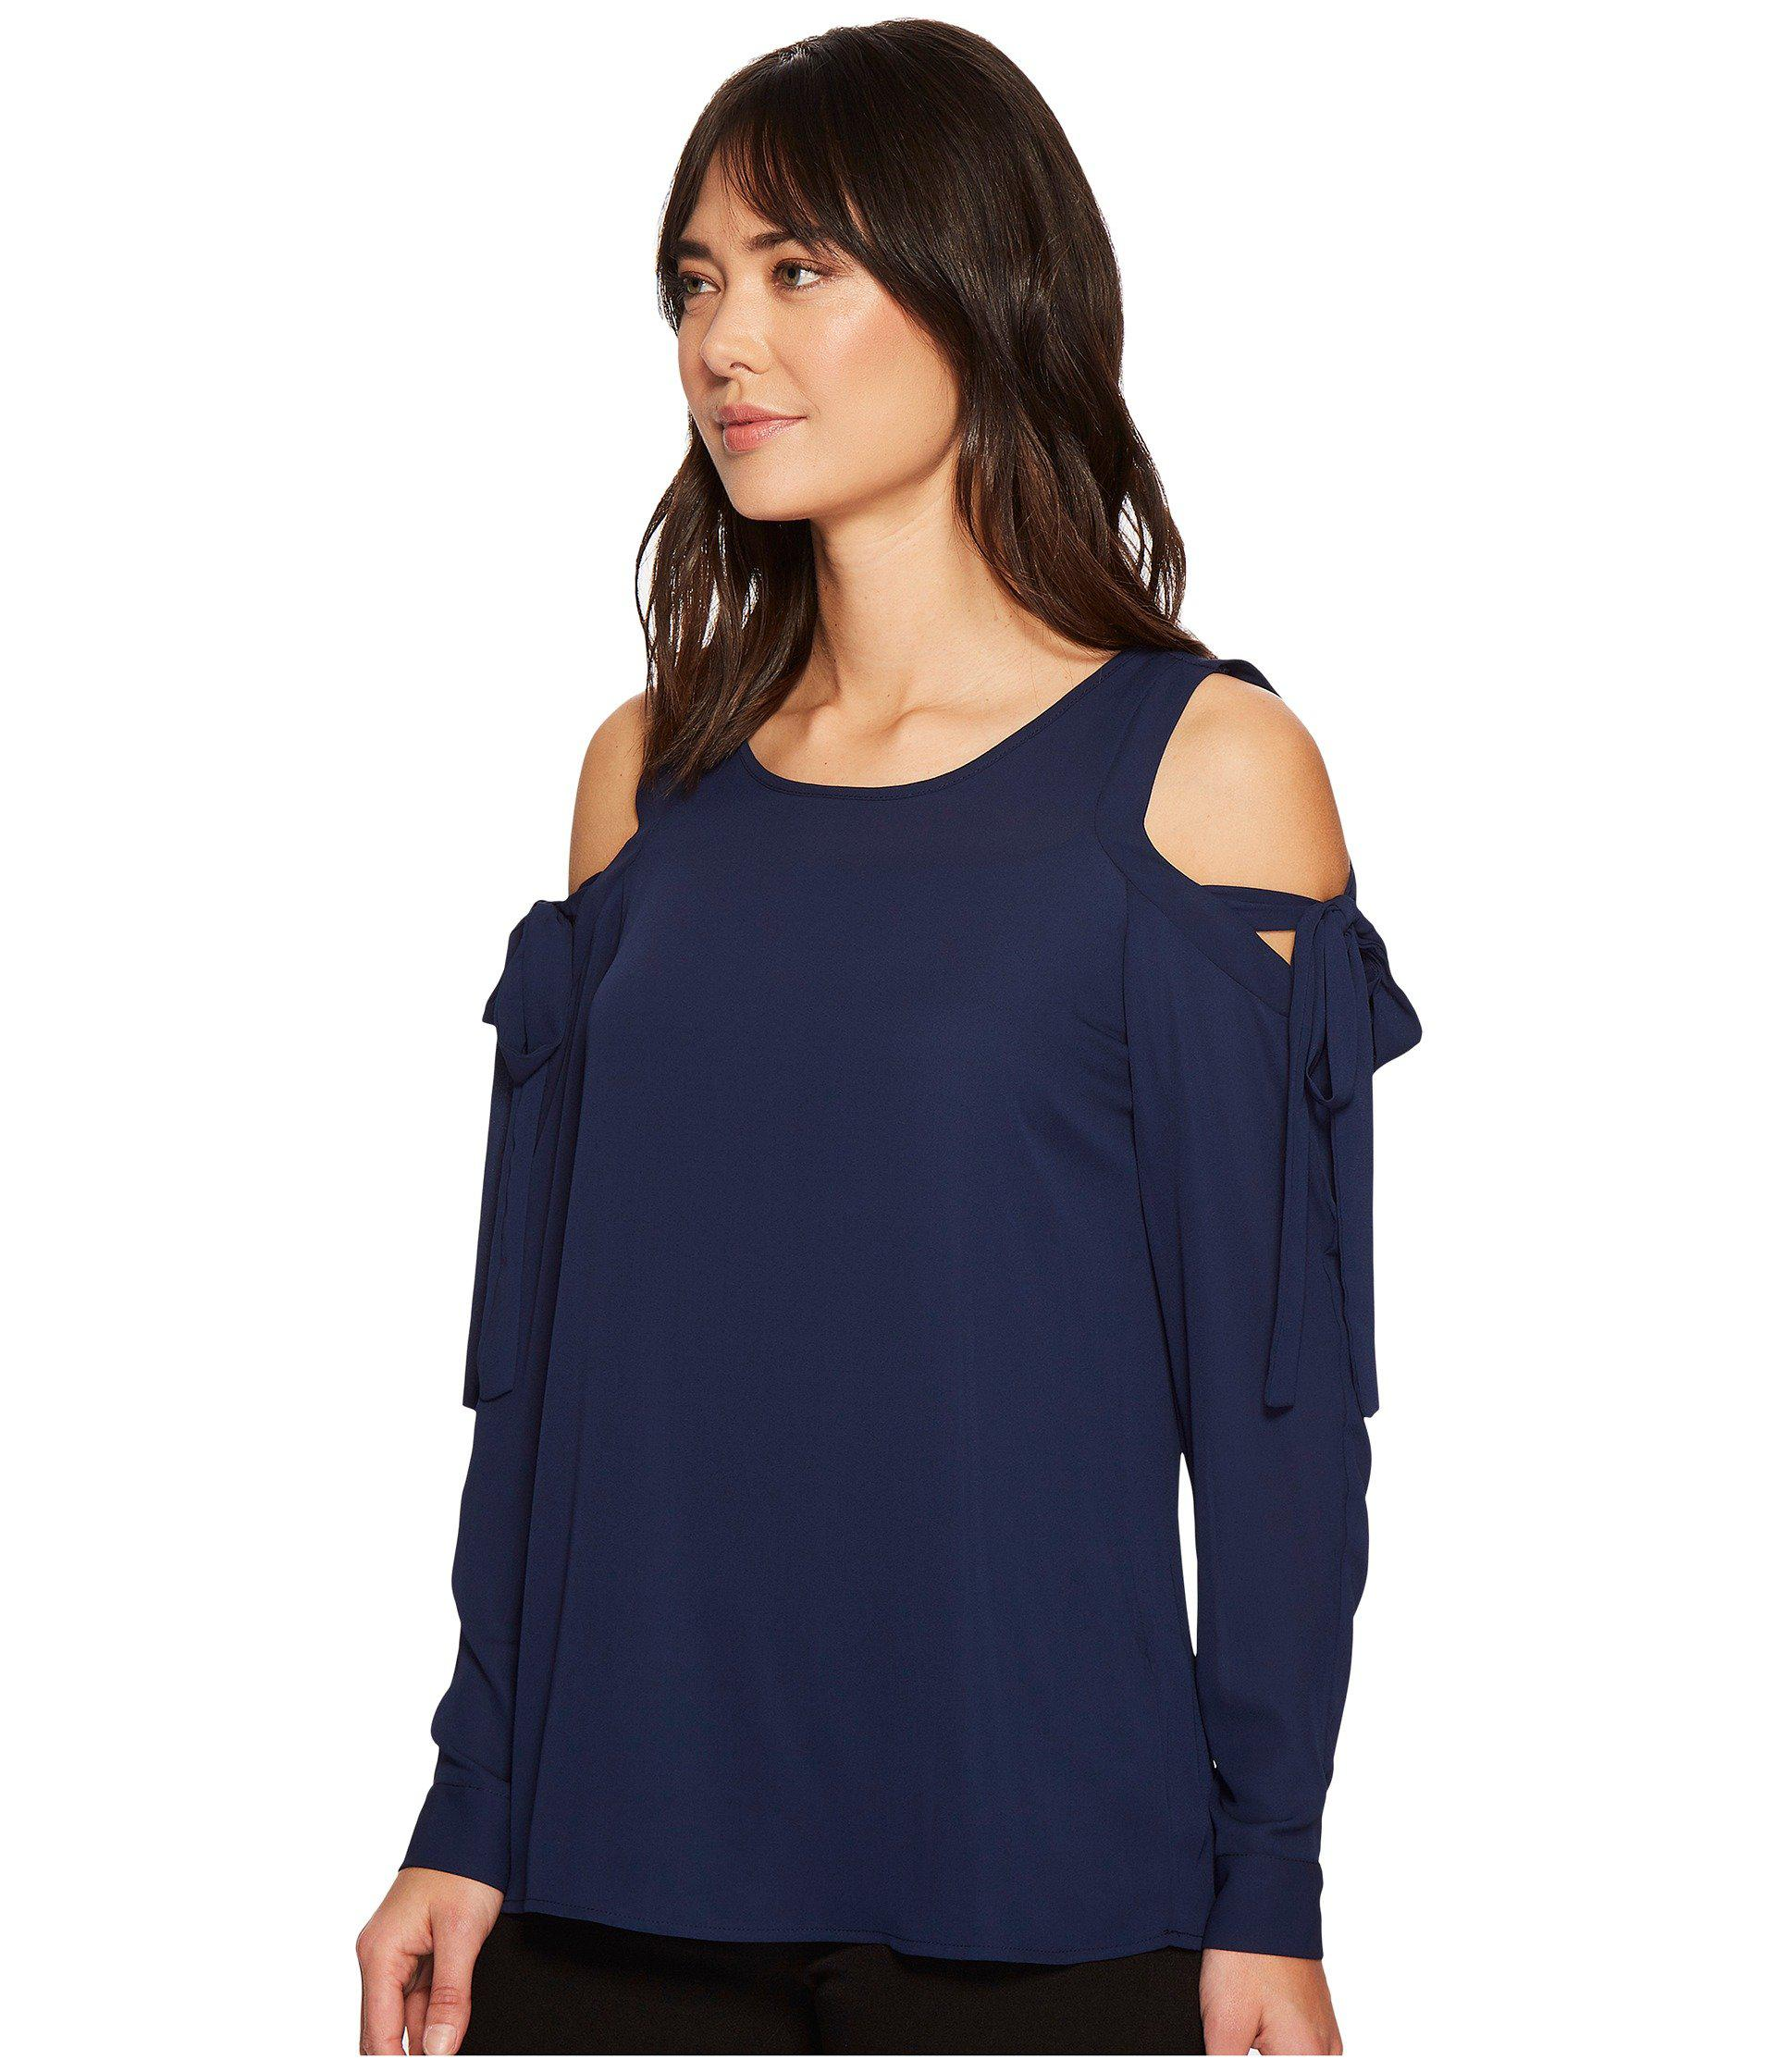 e6a1e6a7dada4 Lyst - Ivanka Trump Woven Cold Shoulder Tie Sleeve Blouse in Blue - Save 14%